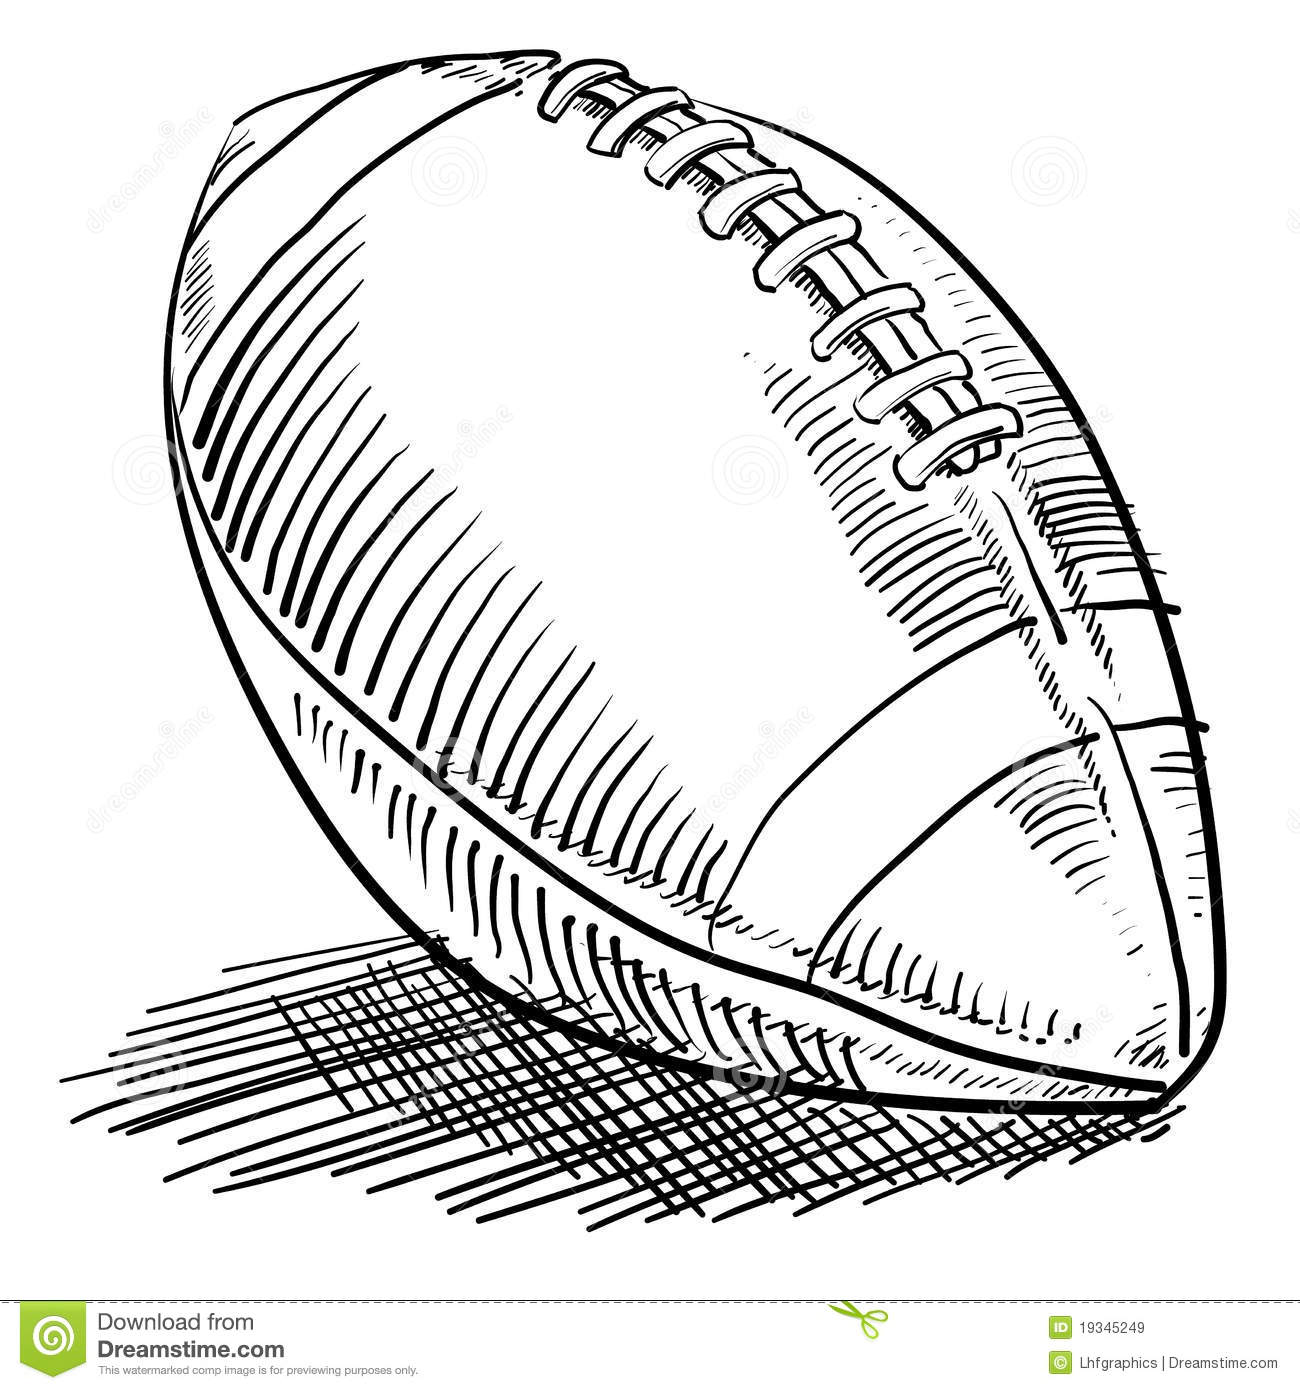 Doodle Style Football Stock Vector Illustration Of